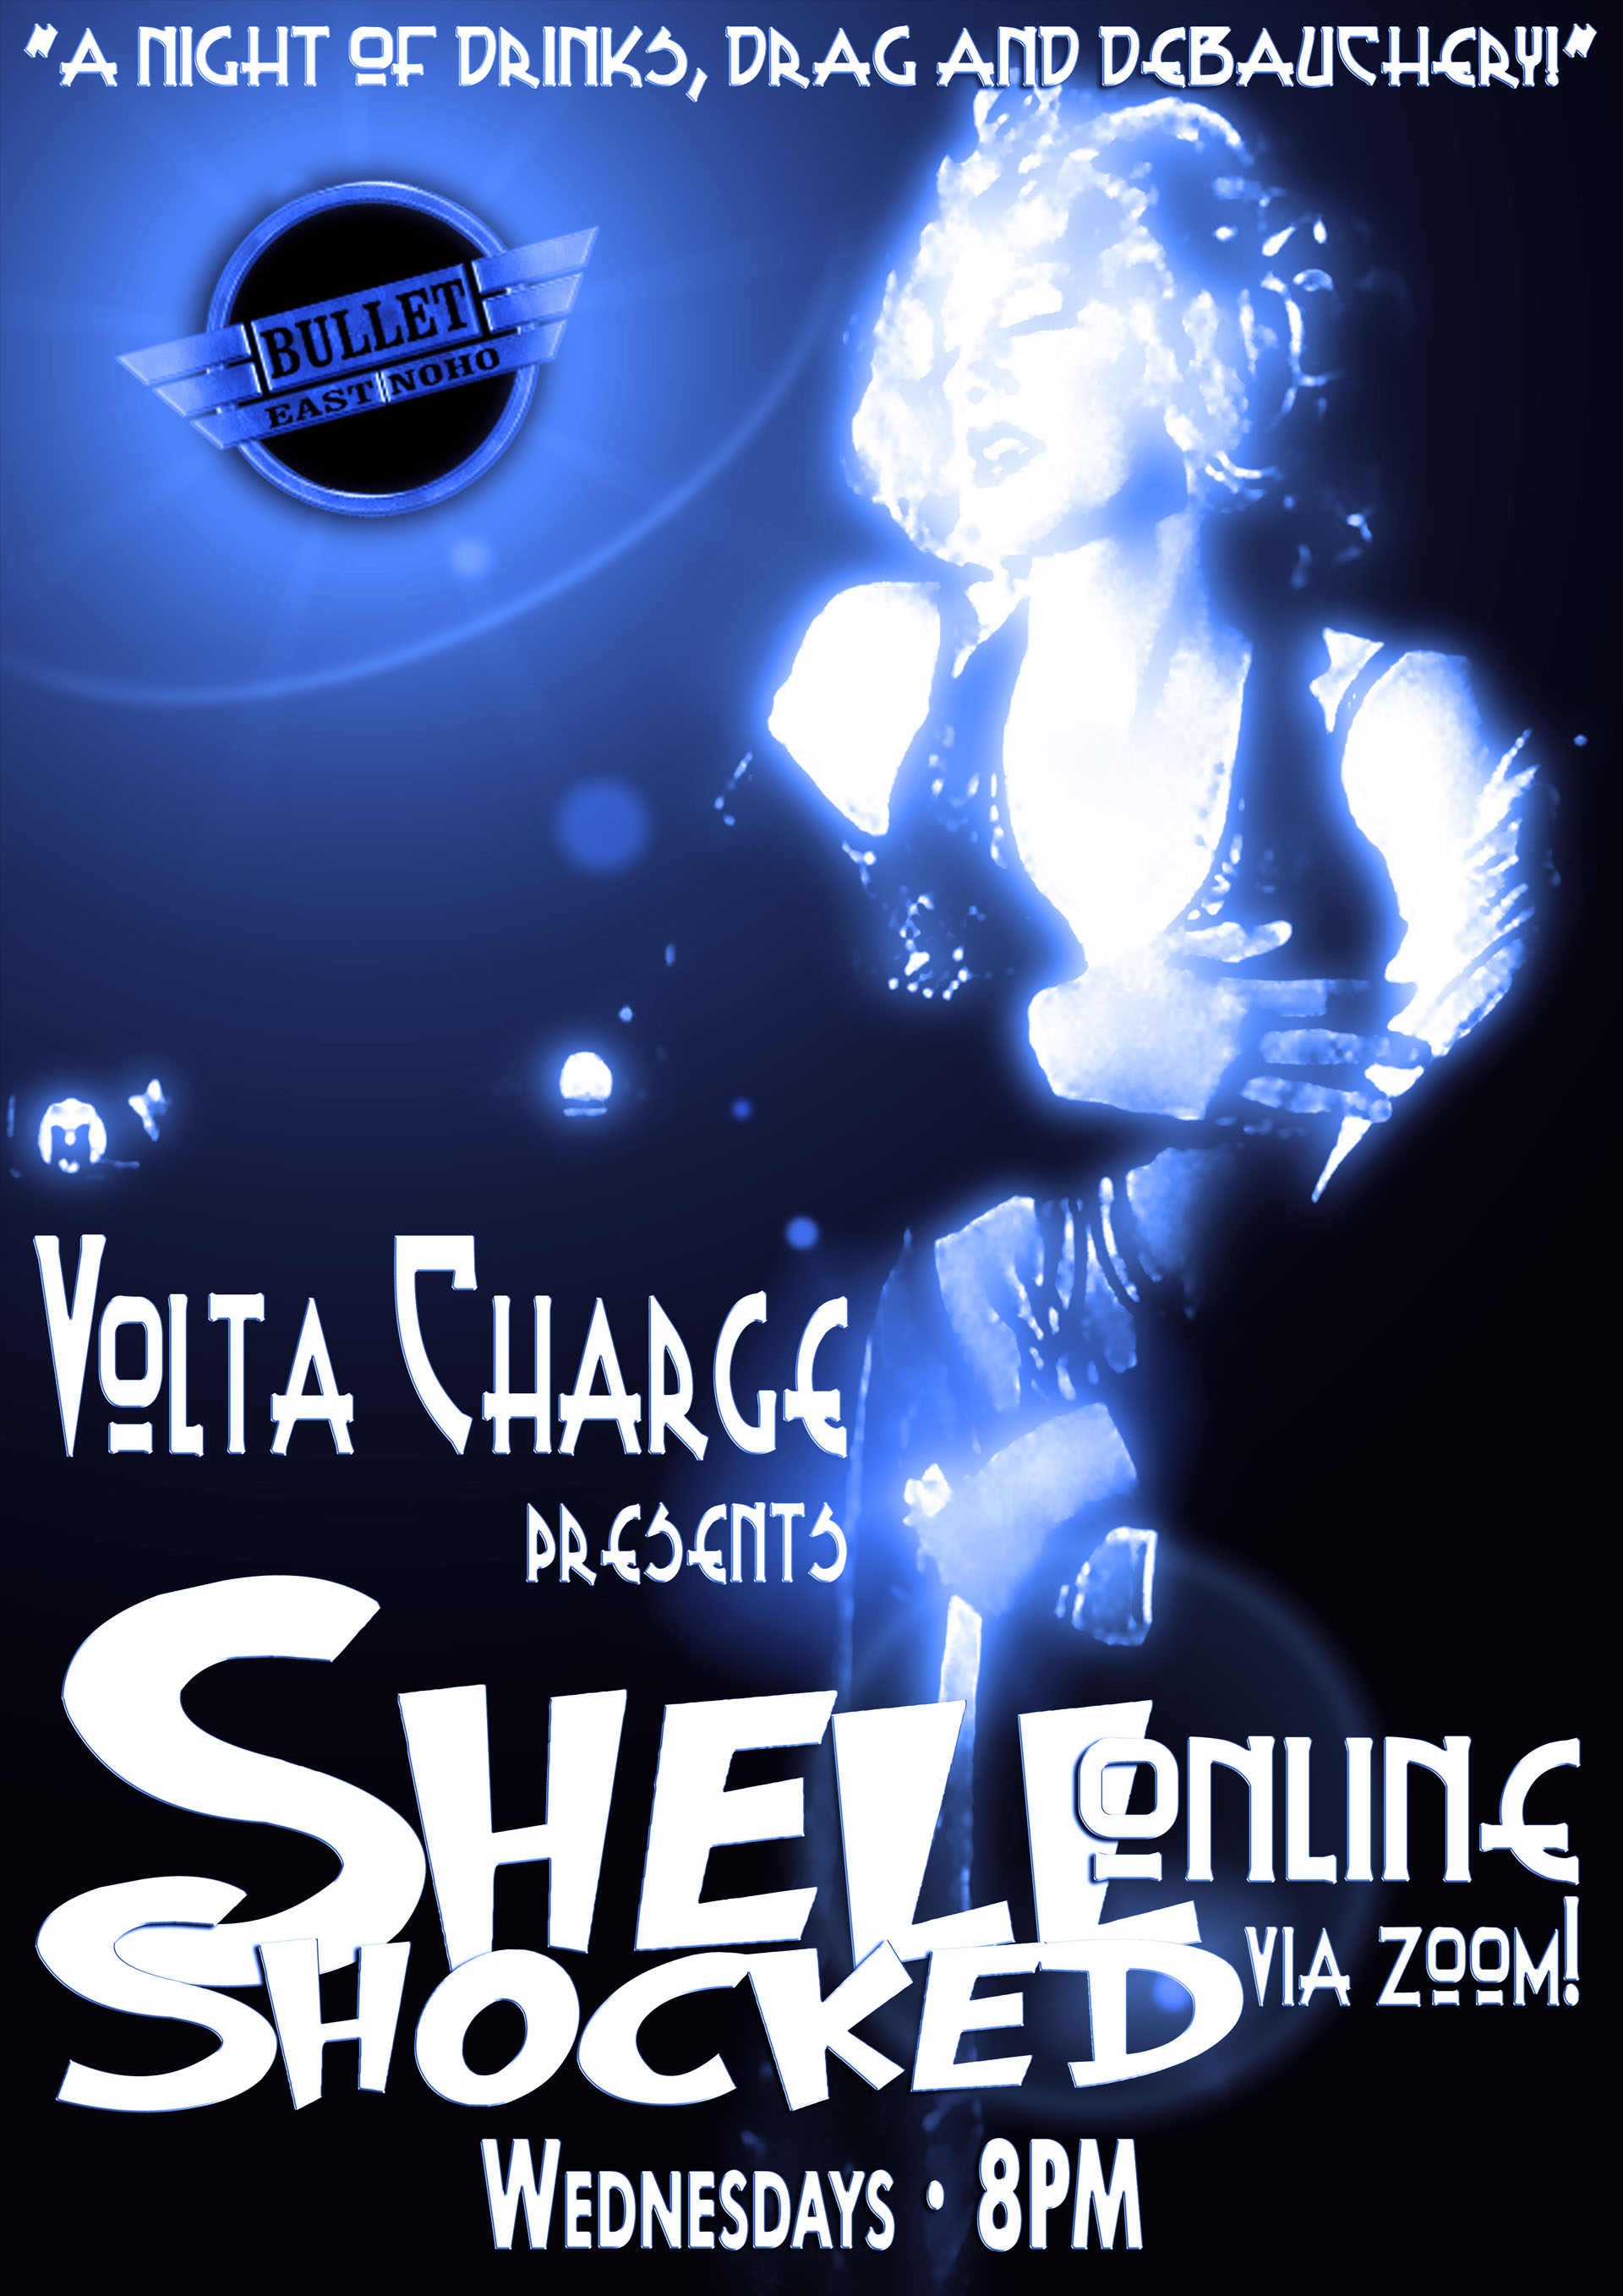 VOLTA CHARGE Presents SHELL SHOCKED ONLINE: Wednesday, August 19, 2020 at 8:00 PM via ZOOM!